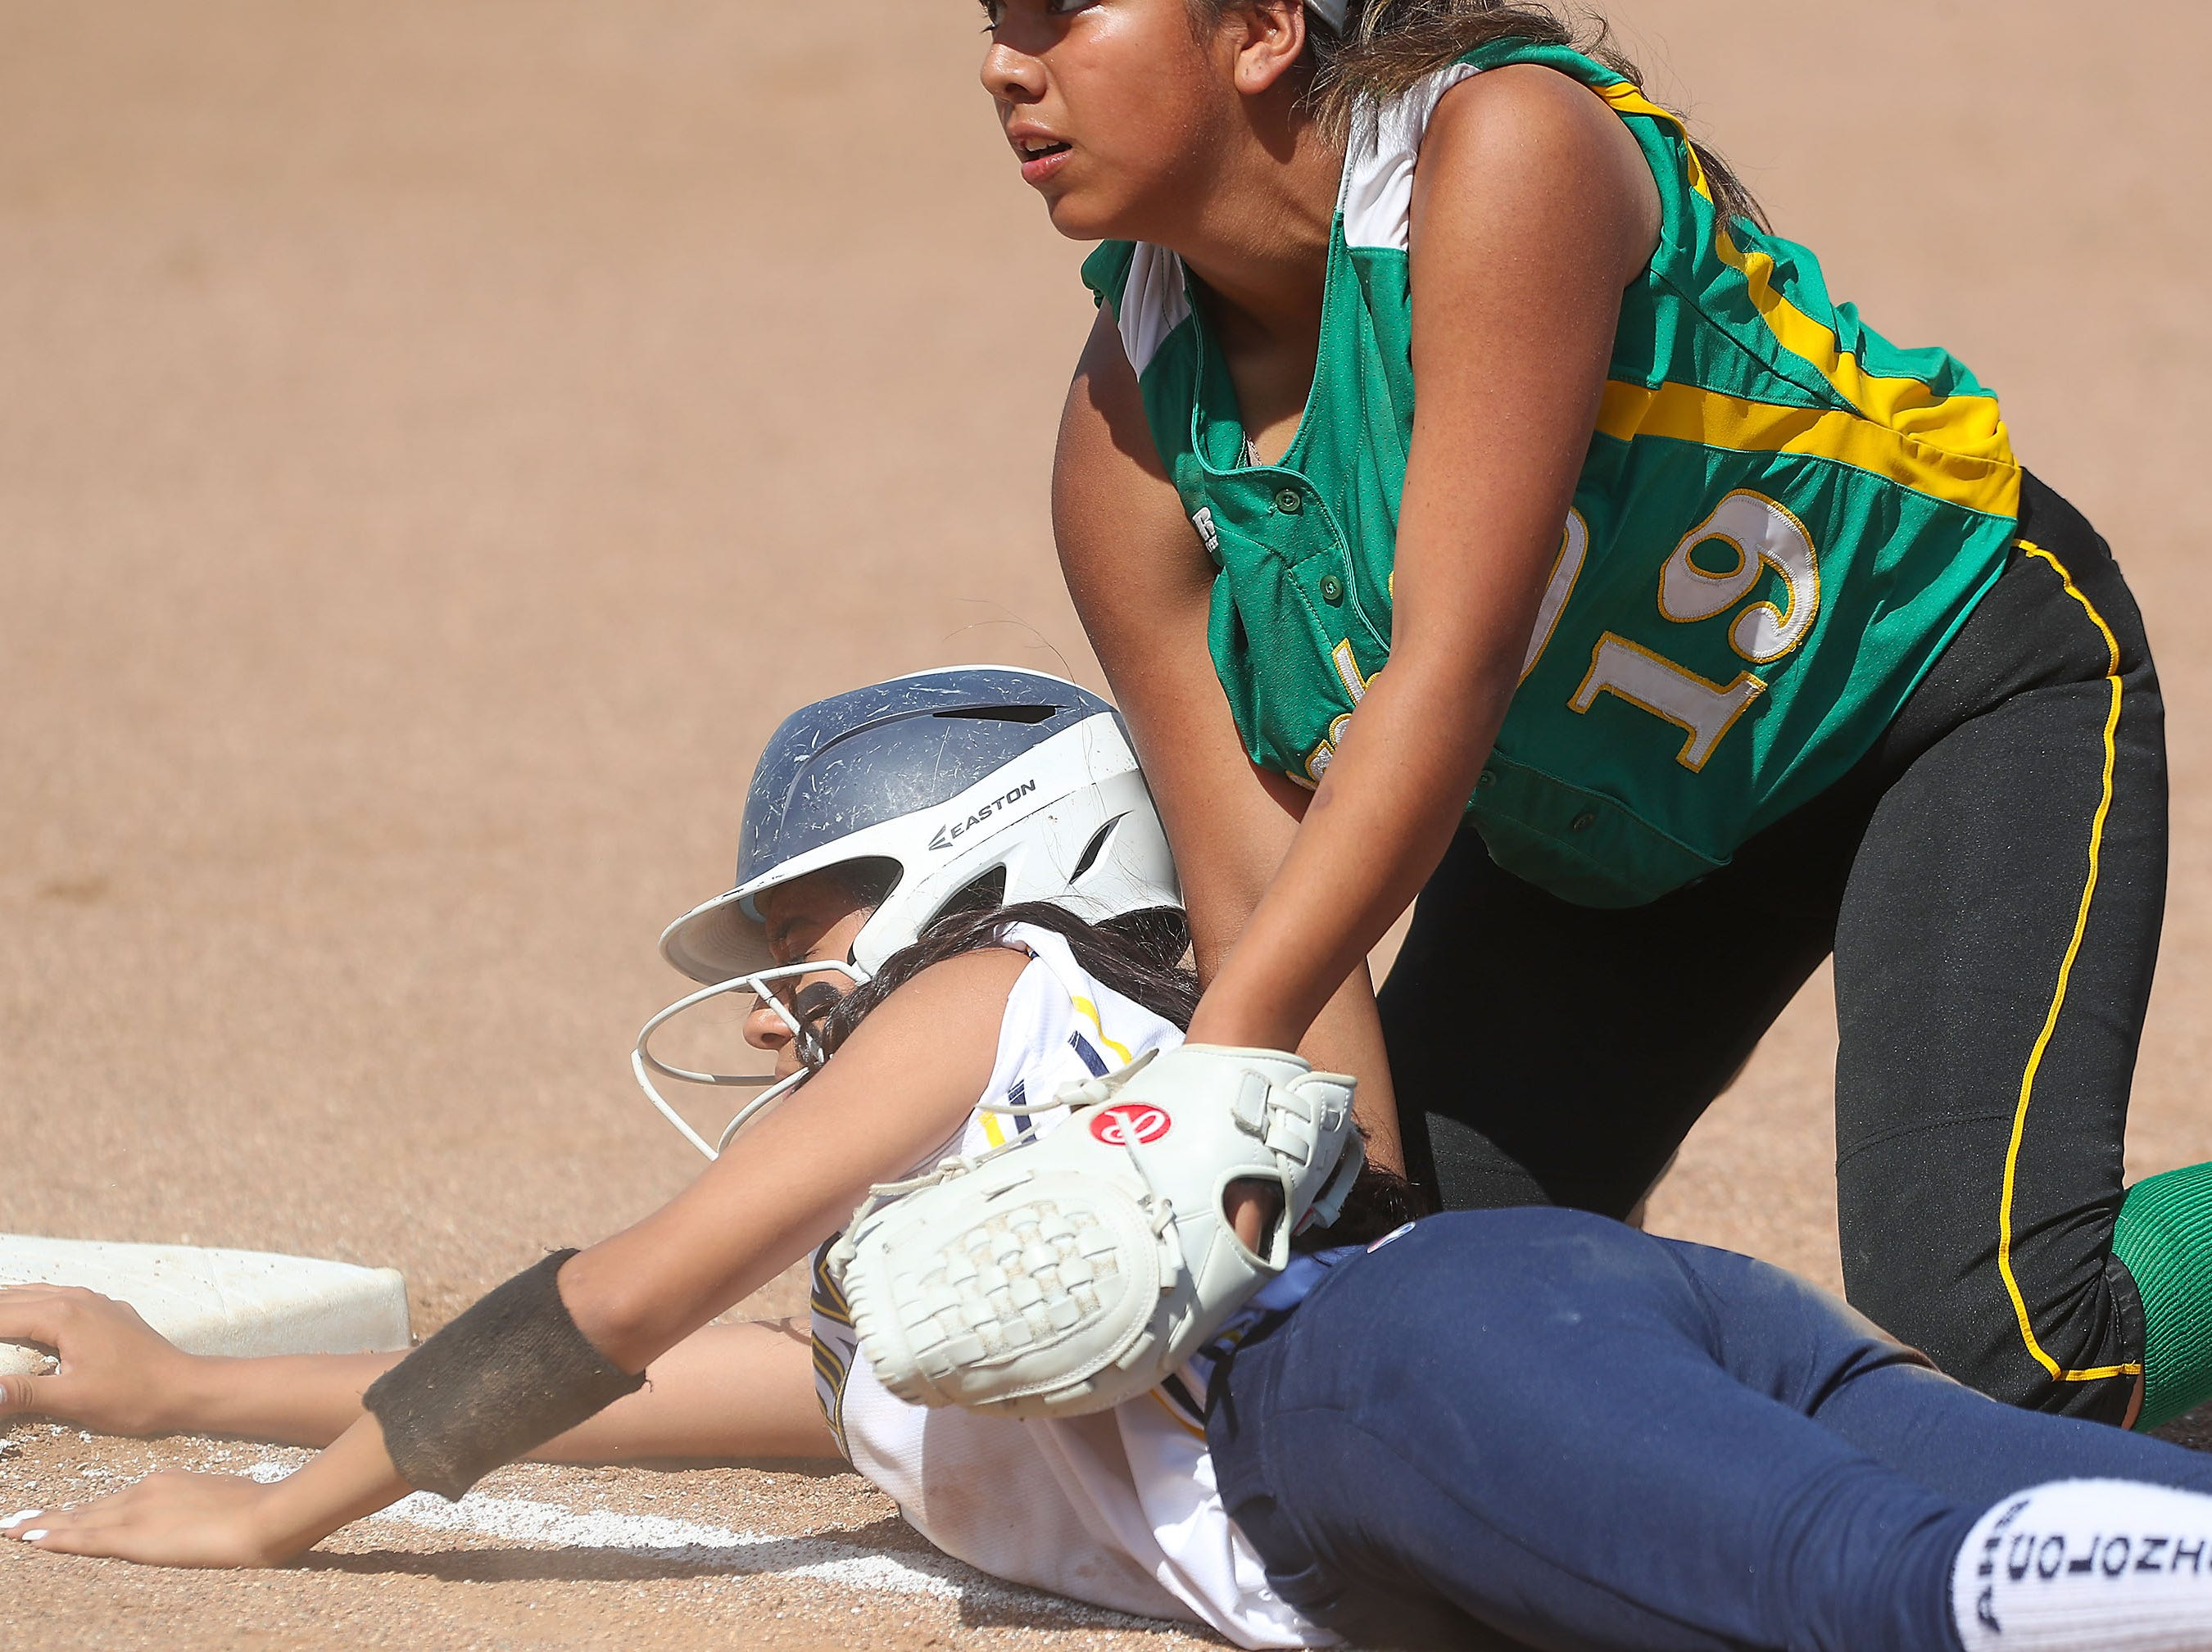 #19 of Coachella Valley tags out an Anaheim runner during the Arabs loss, May 9, 2019.